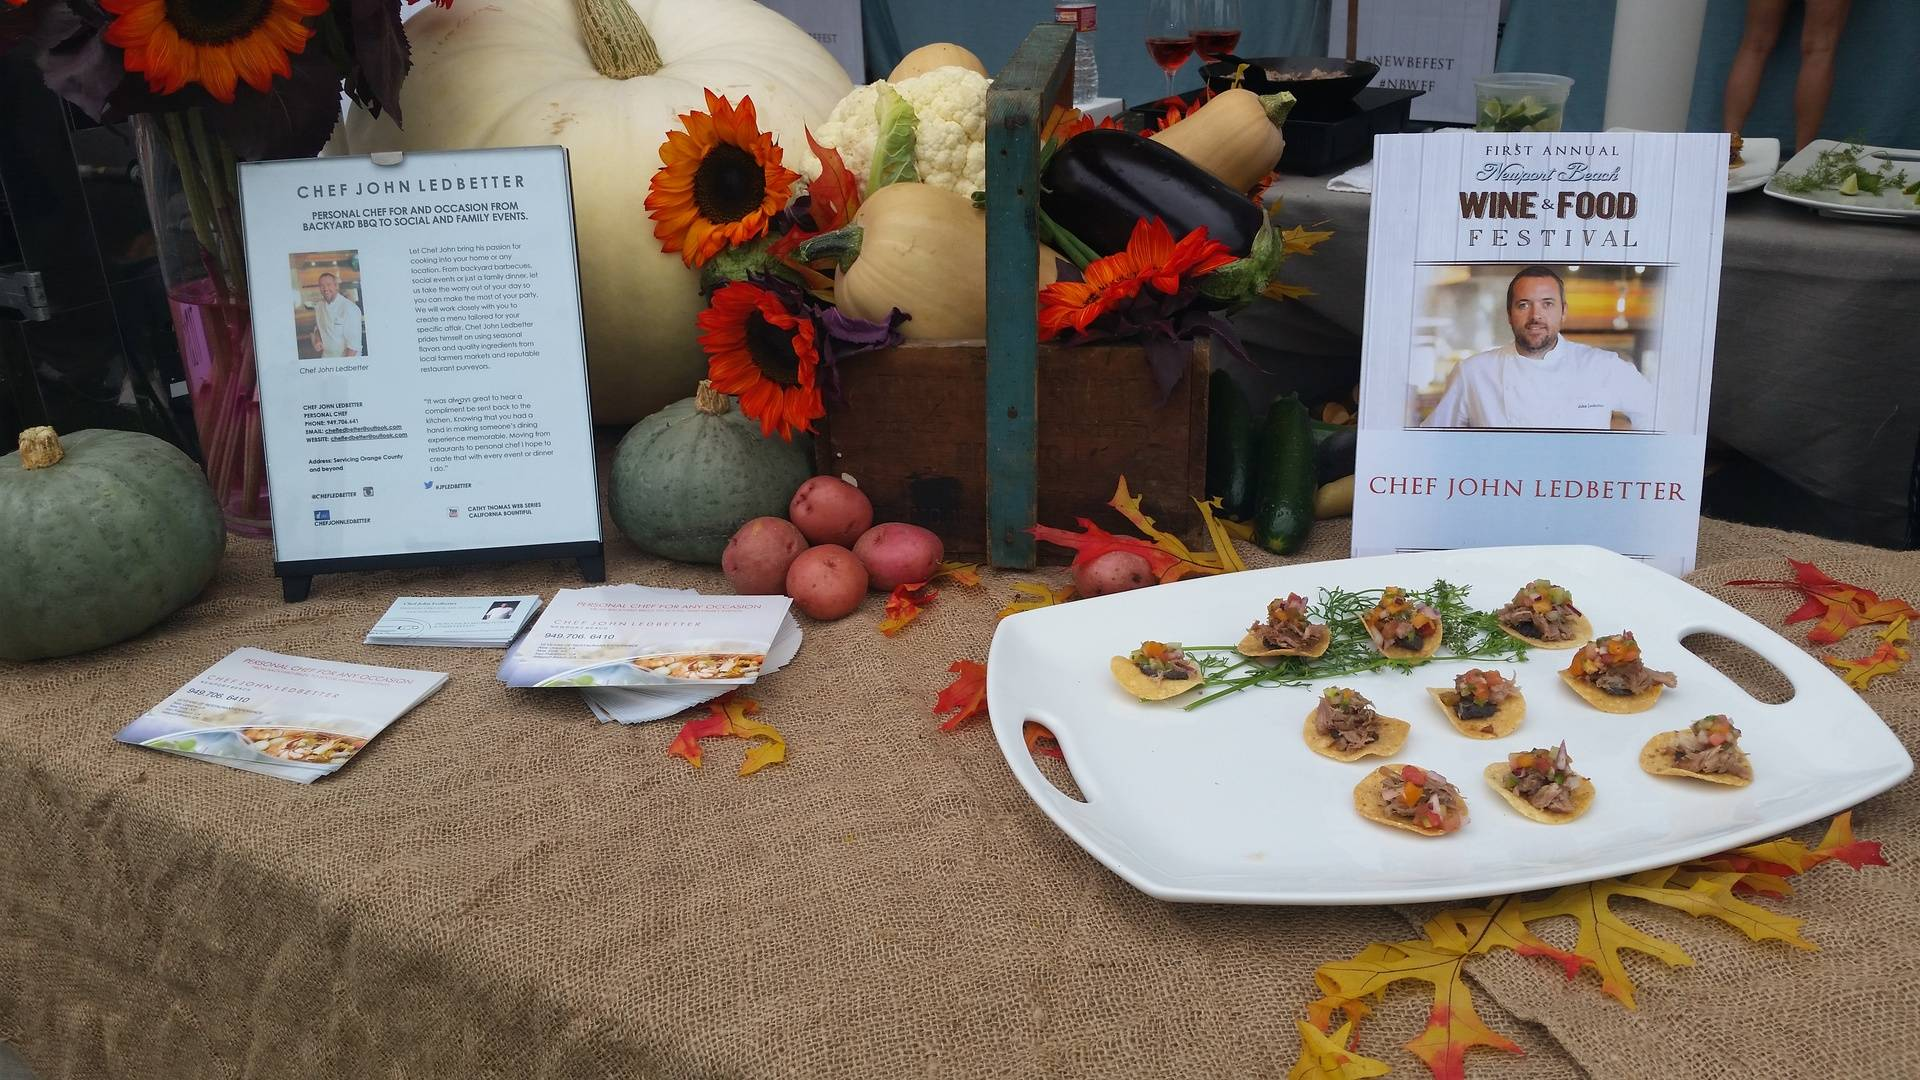 Hor d' Oeuvres display at the event on Saturday